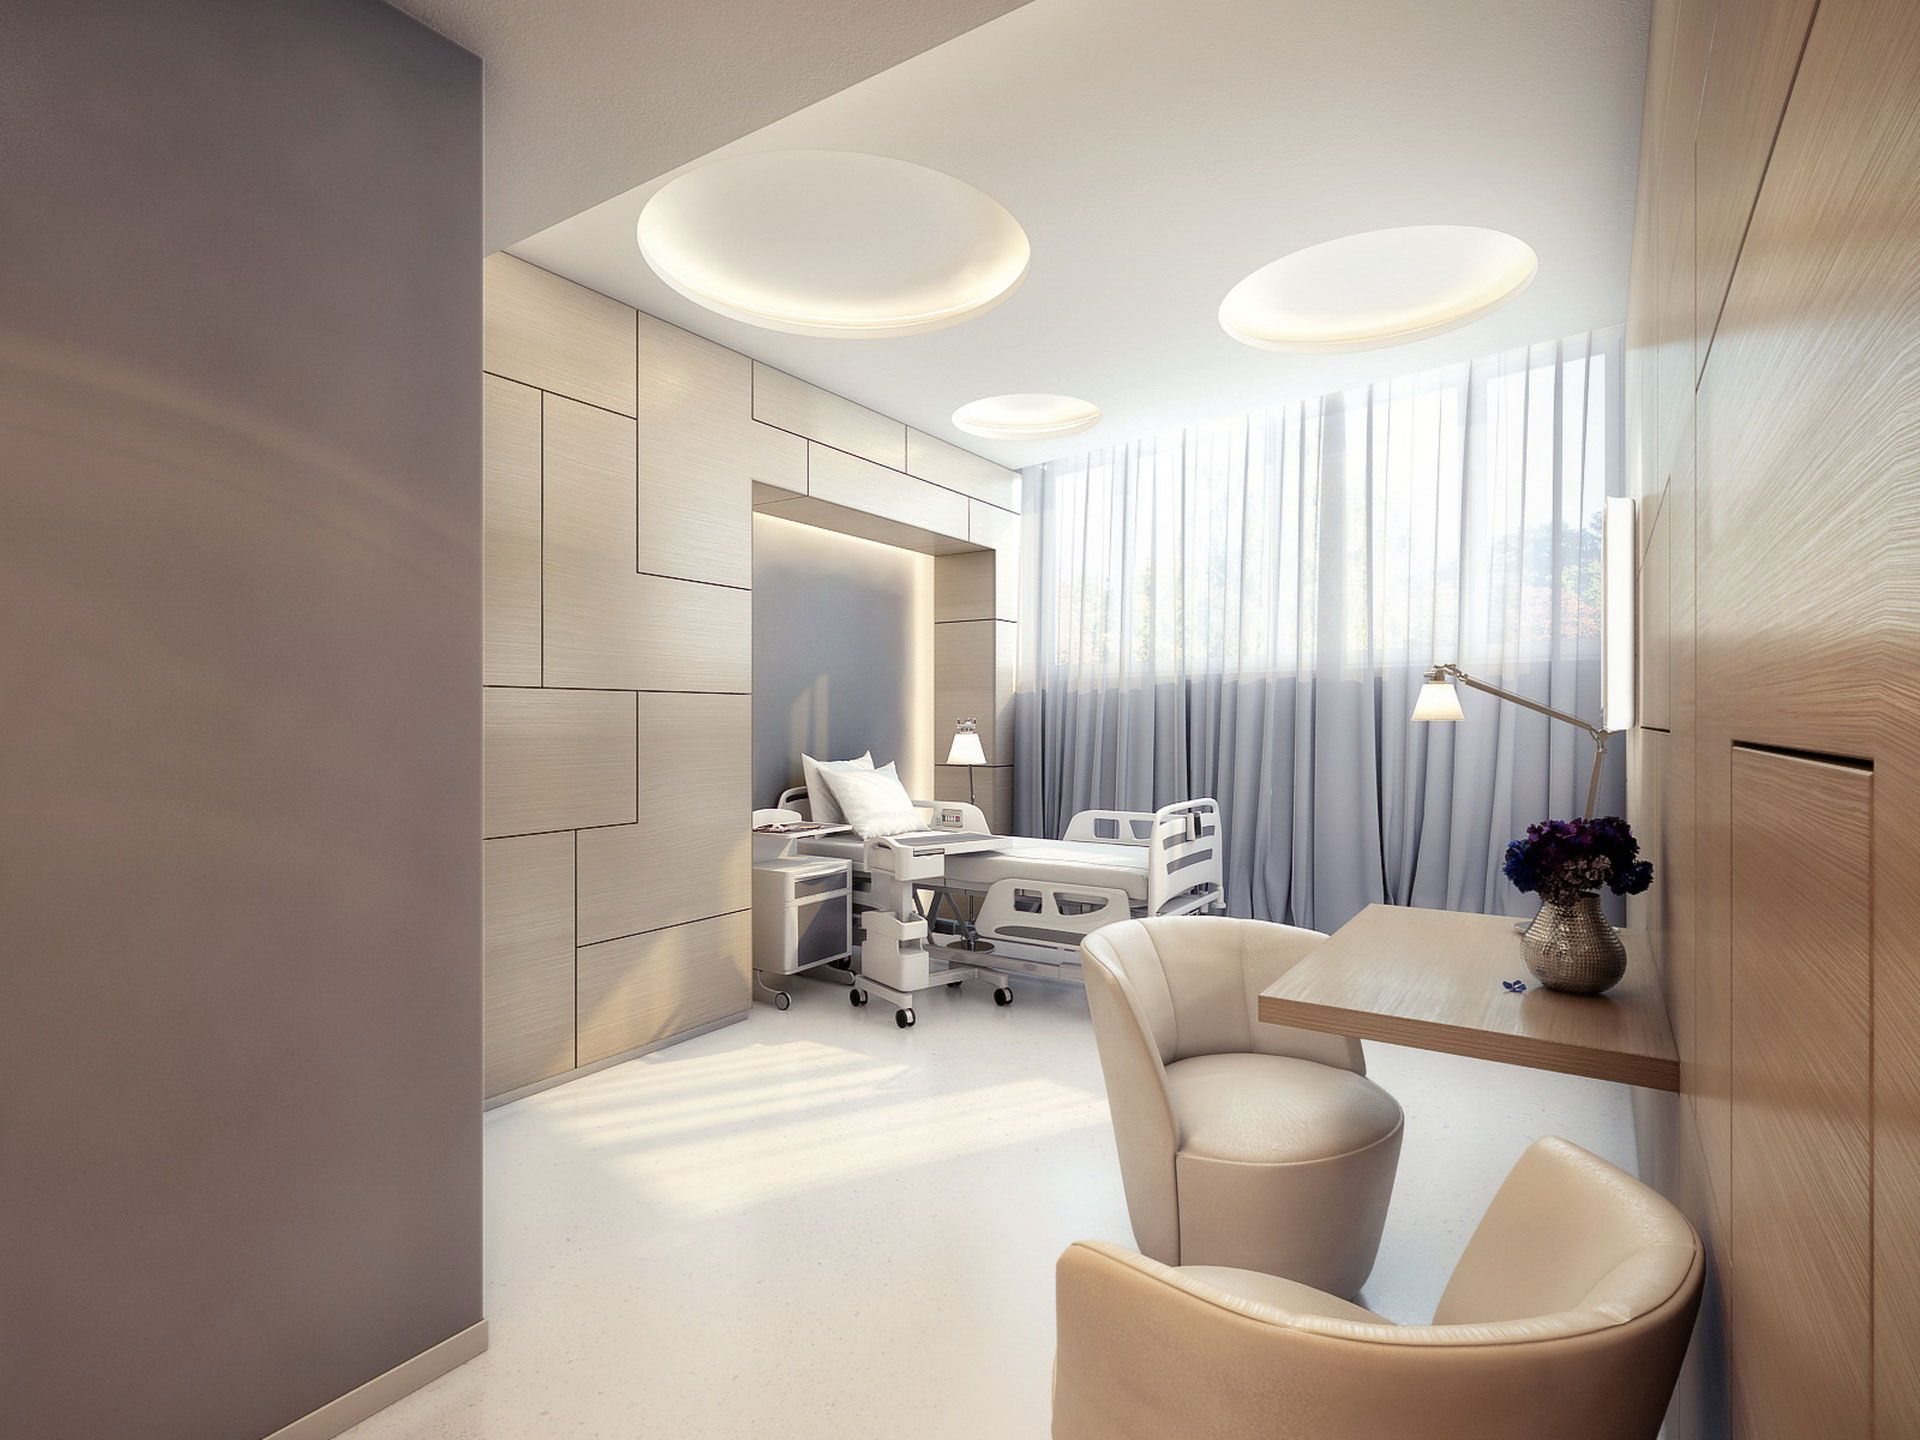 Office Workspace Extra Modern White Surgery Clinic Interior Design Wooden Wall Paneling With